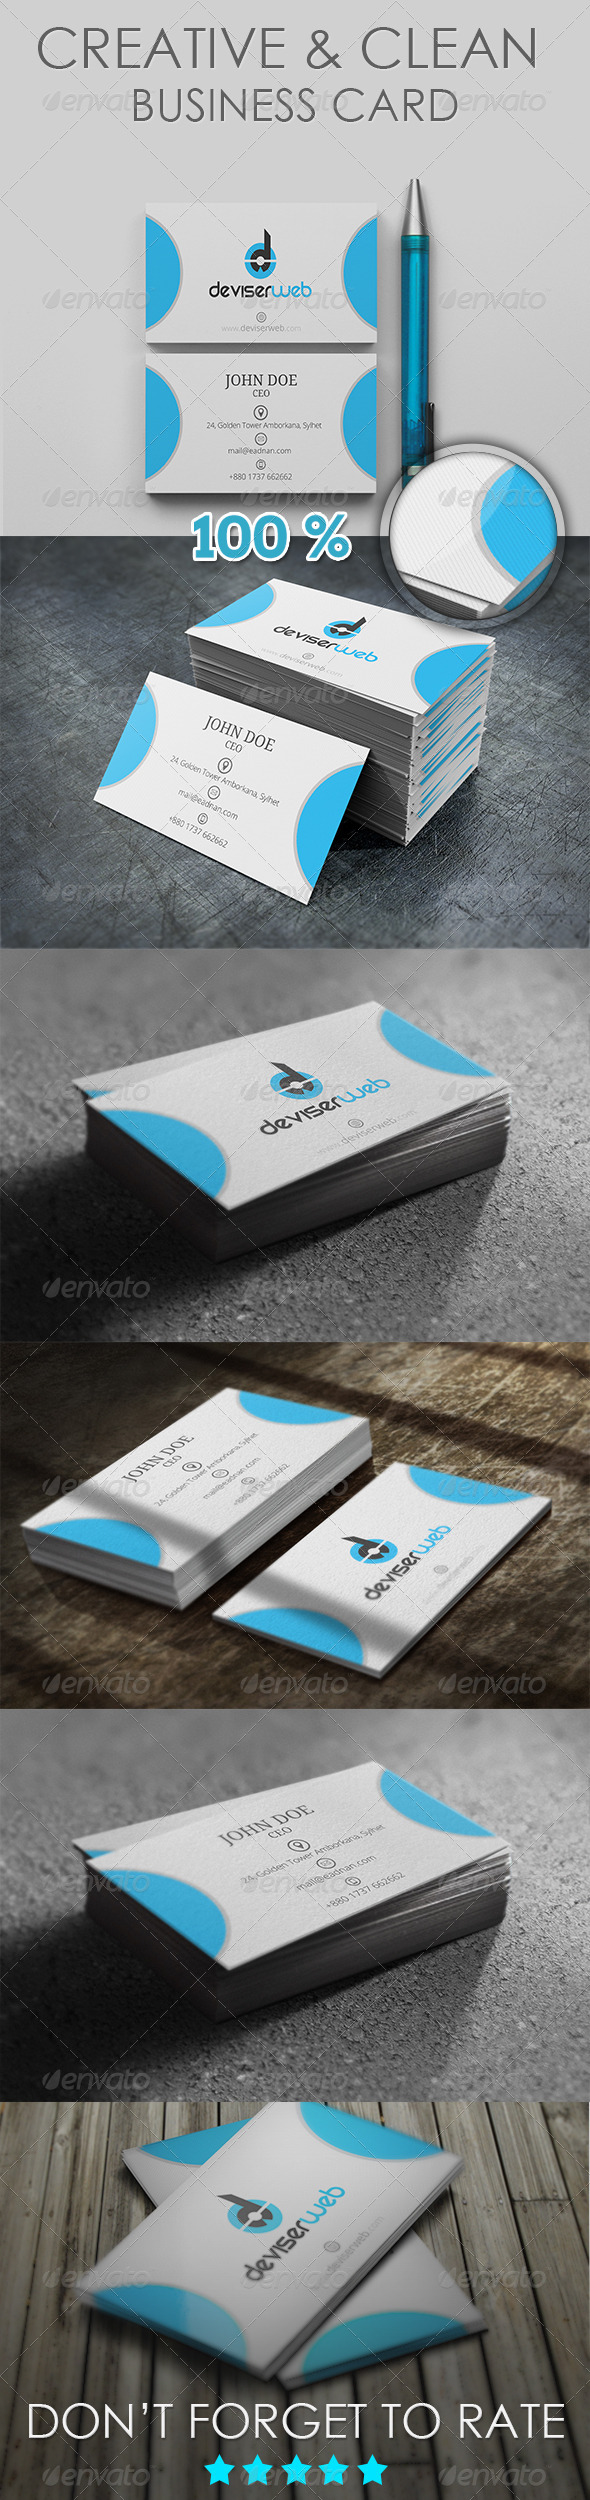 Creative & Clean Business Card - Creative Business Cards